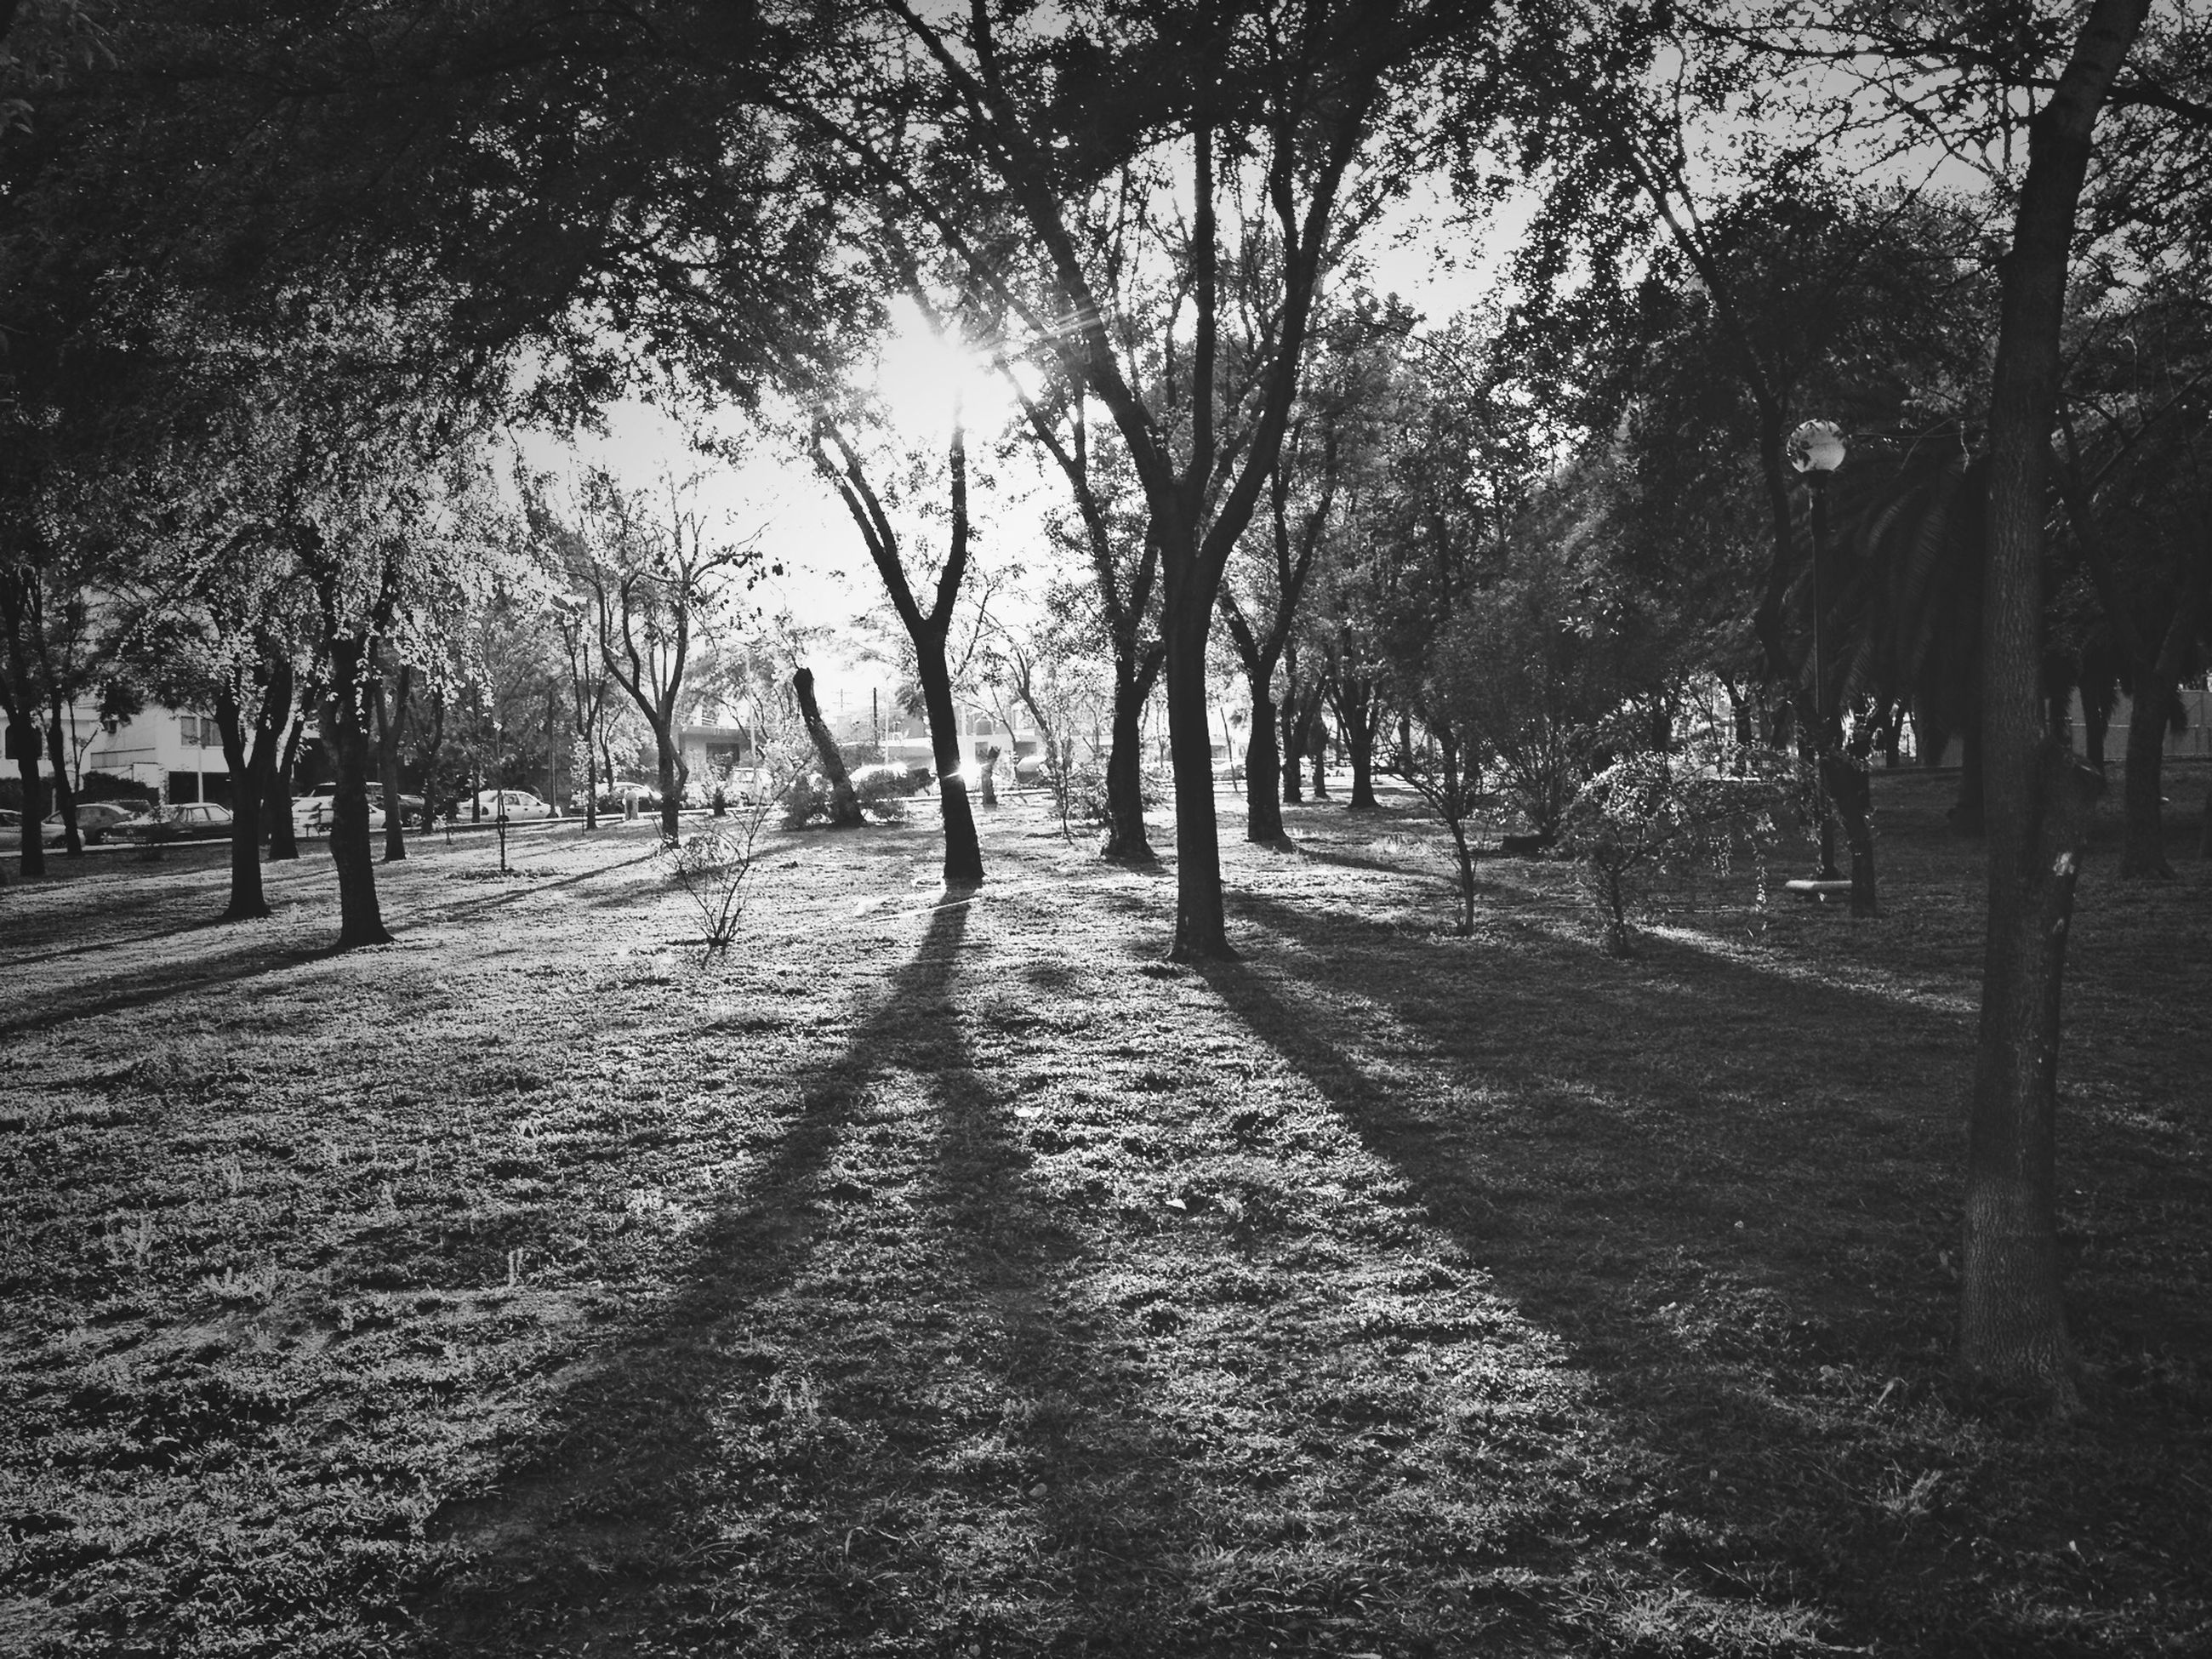 tree, tranquility, tree trunk, sunlight, tranquil scene, growth, shadow, nature, park - man made space, branch, beauty in nature, scenics, footpath, the way forward, treelined, outdoors, day, road, street, no people